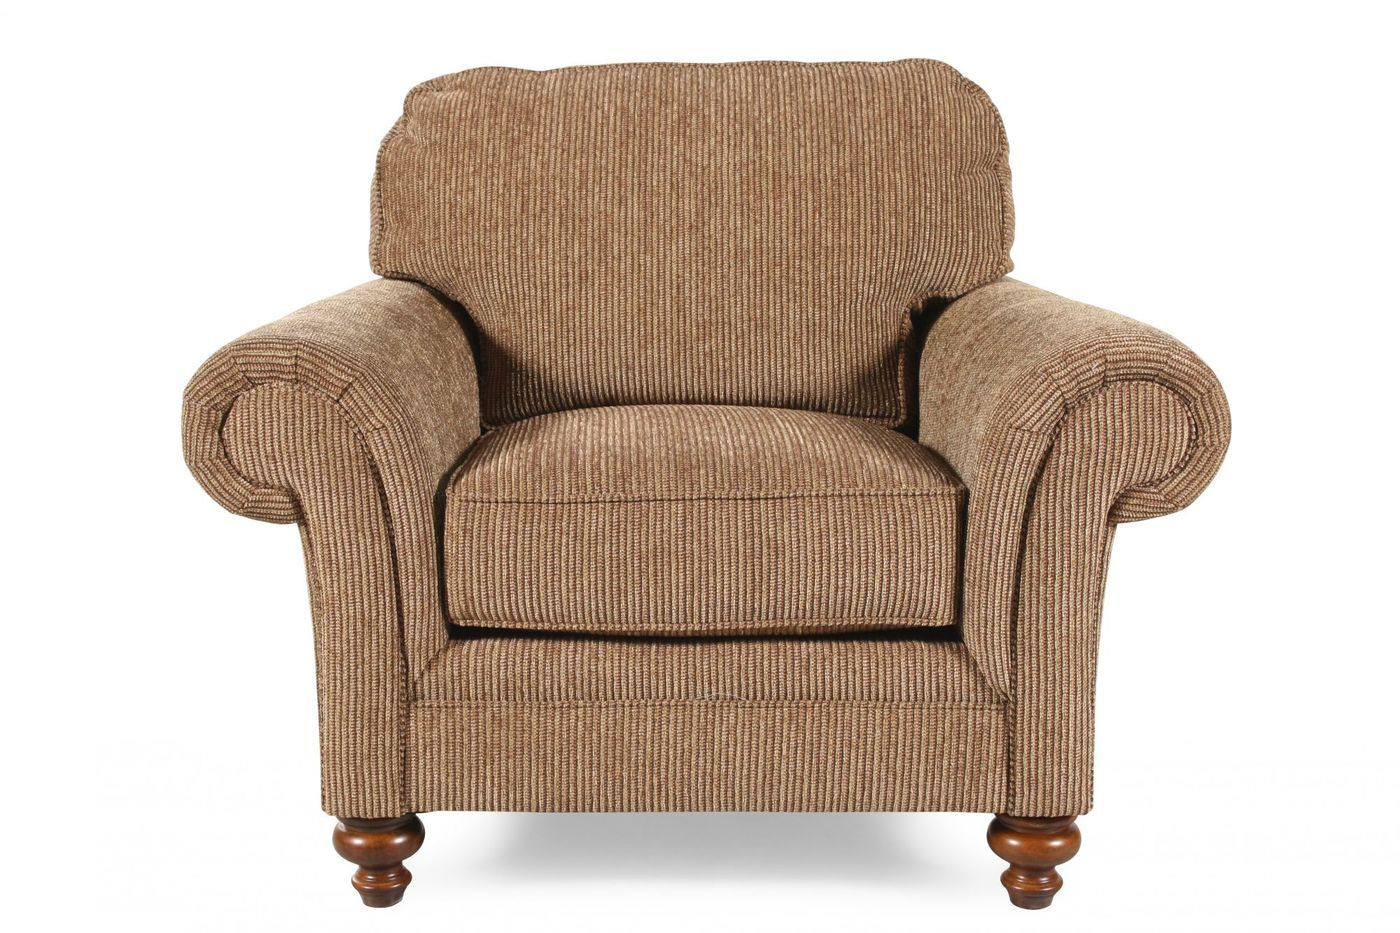 Awesome Broyhill Larissa Chair Mathis Brothers Furniture Pabps2019 Chair Design Images Pabps2019Com